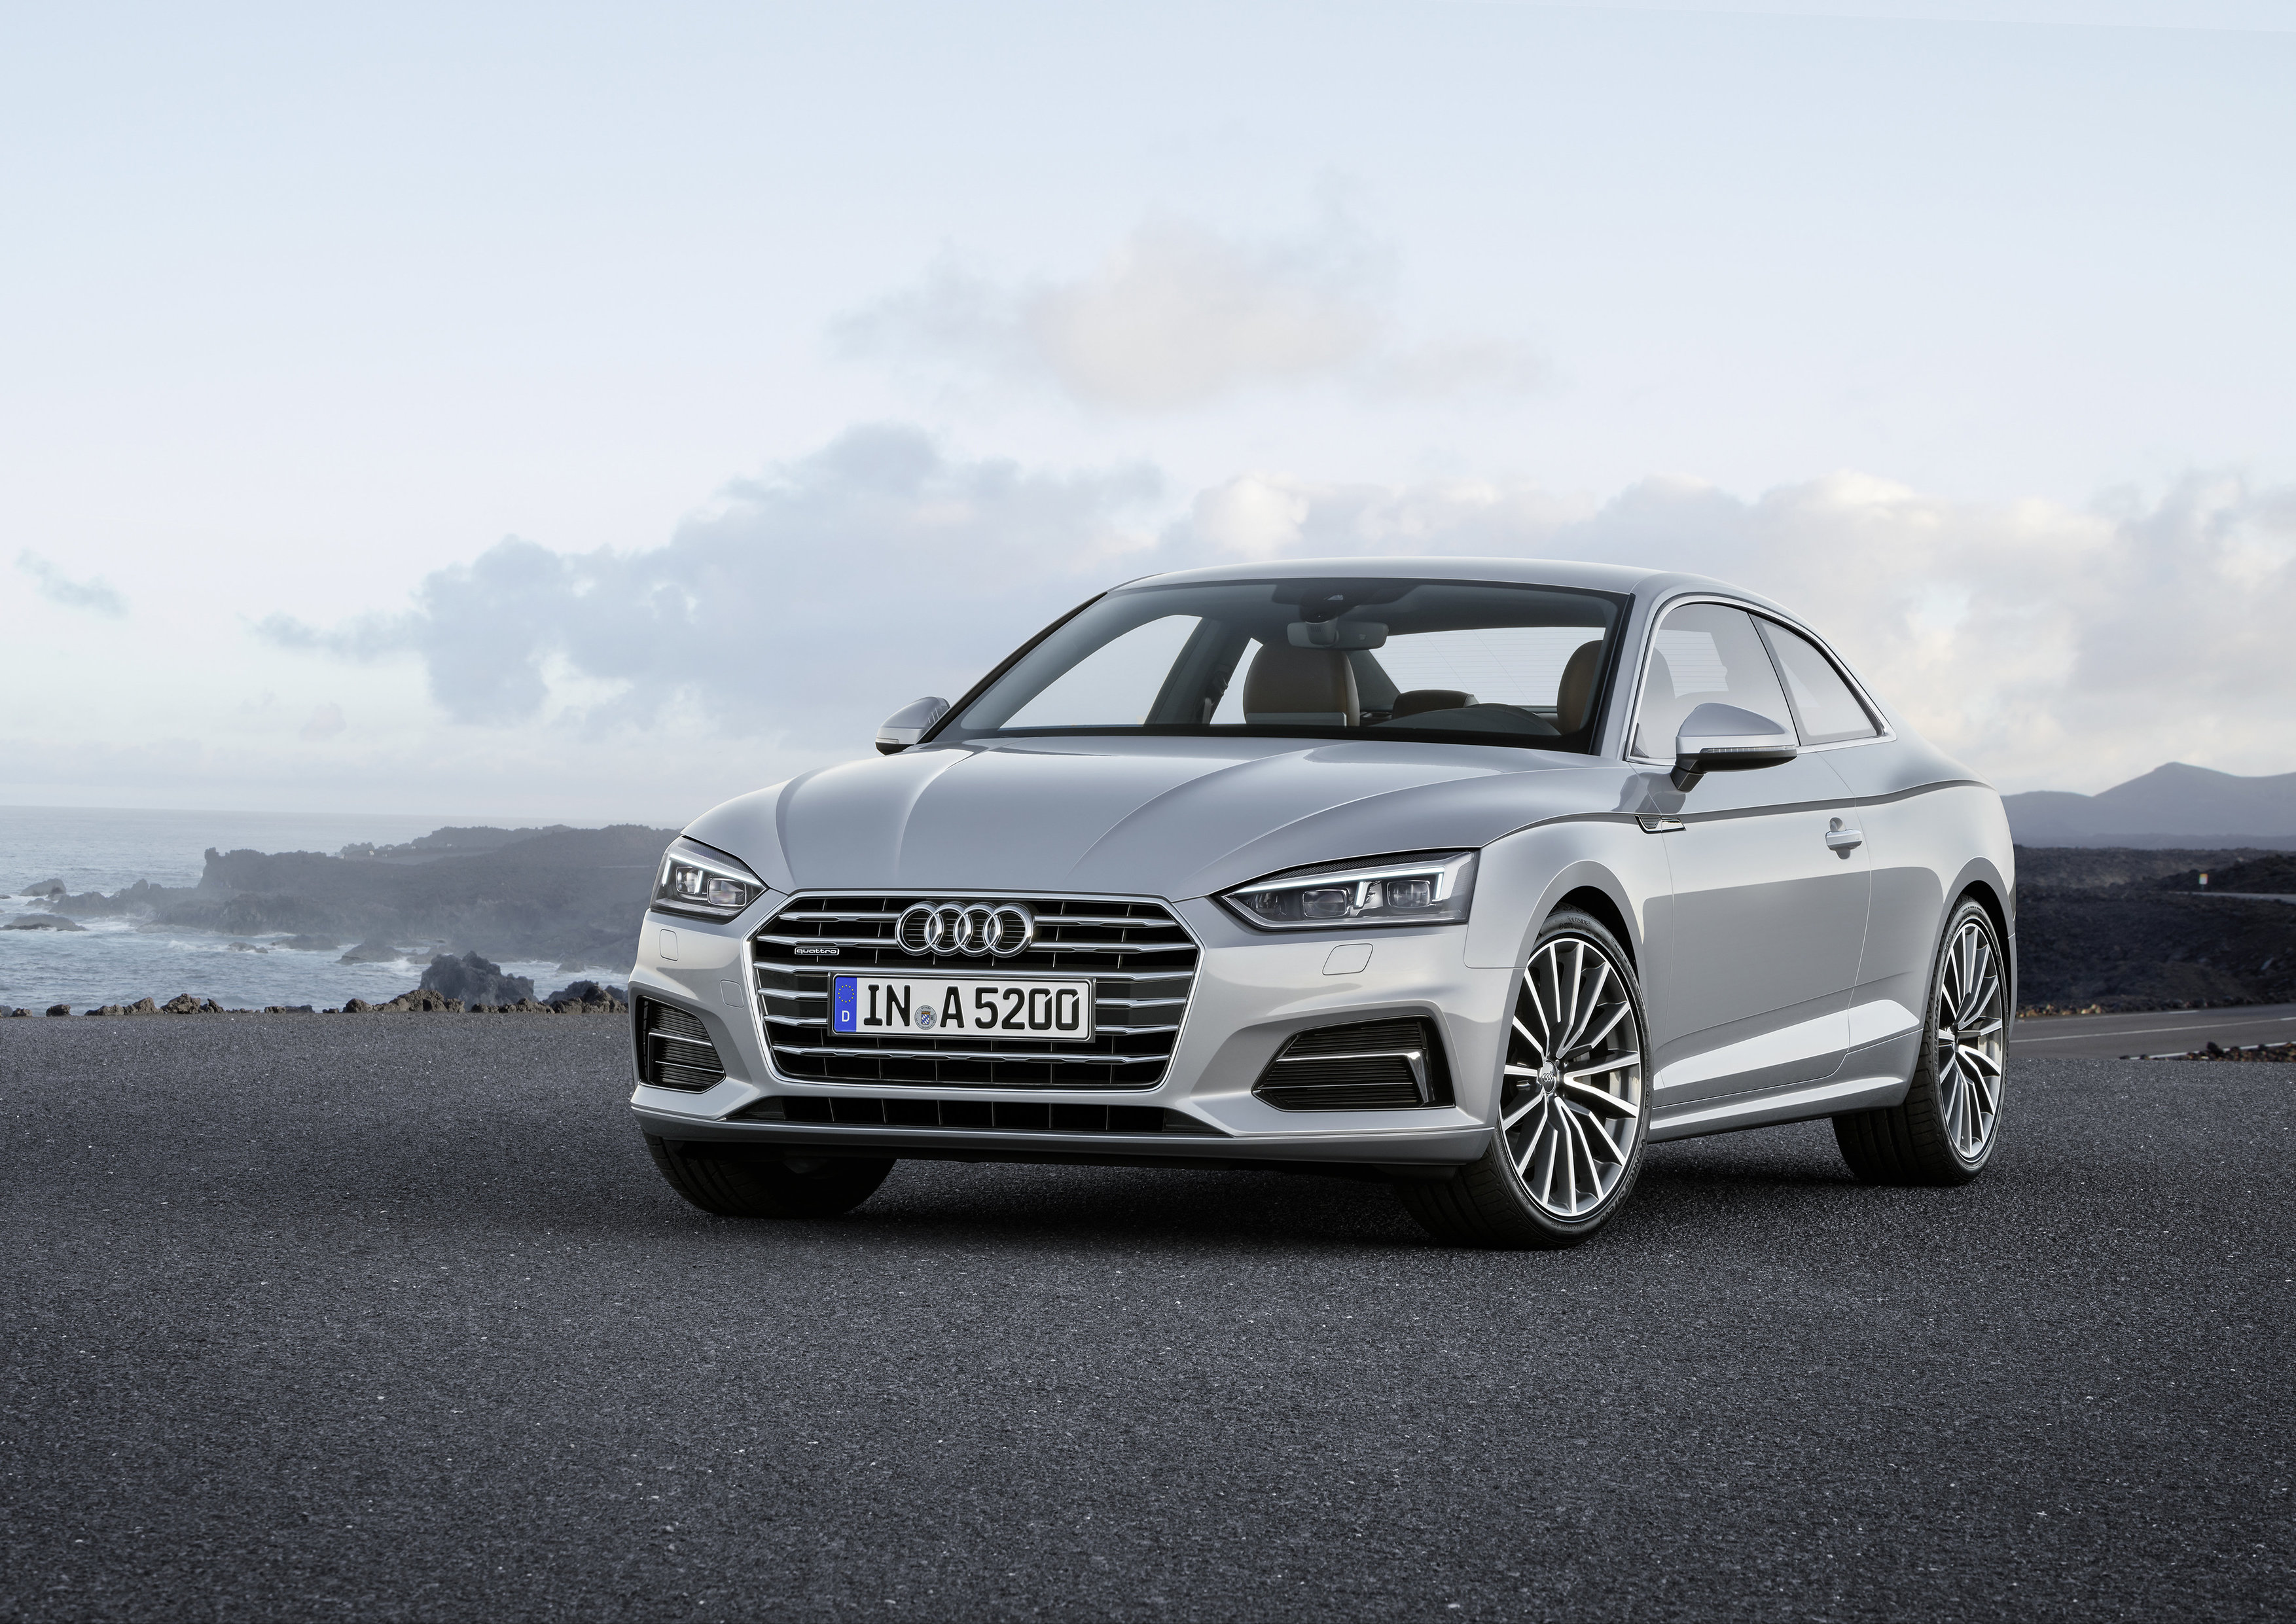 Audi Planning to Work with Huawei on Connected Car Tech